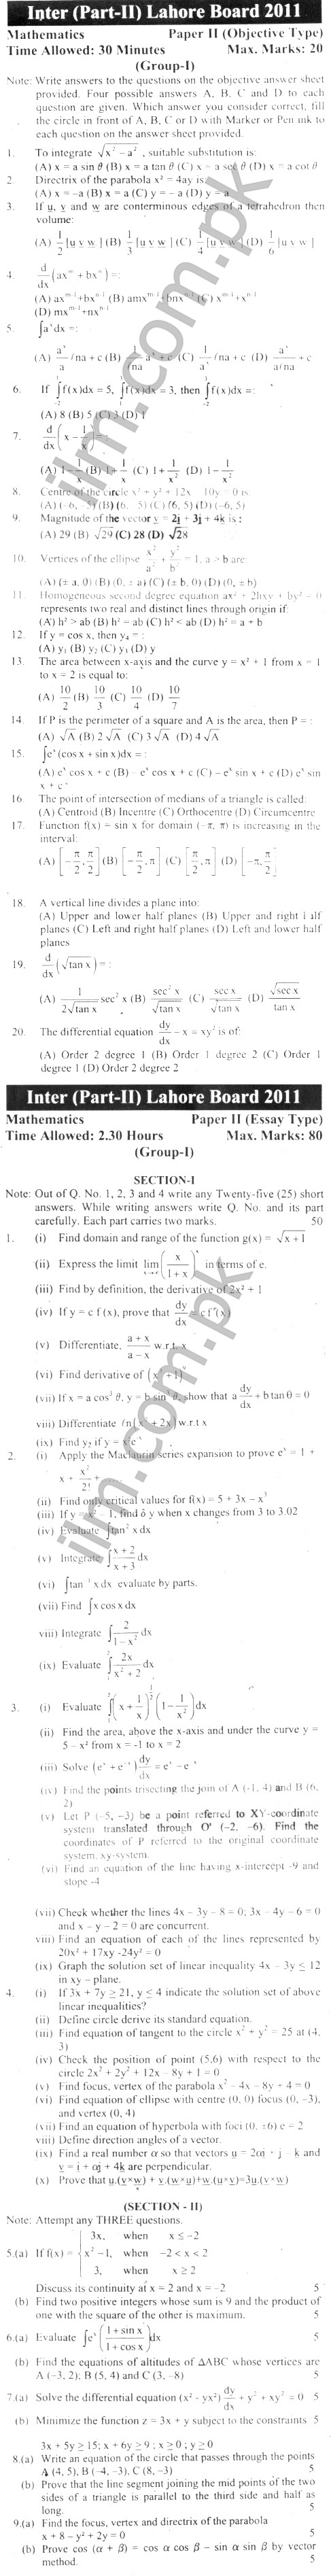 Lahore Board Inter Part 2 Math Past Papers 2011